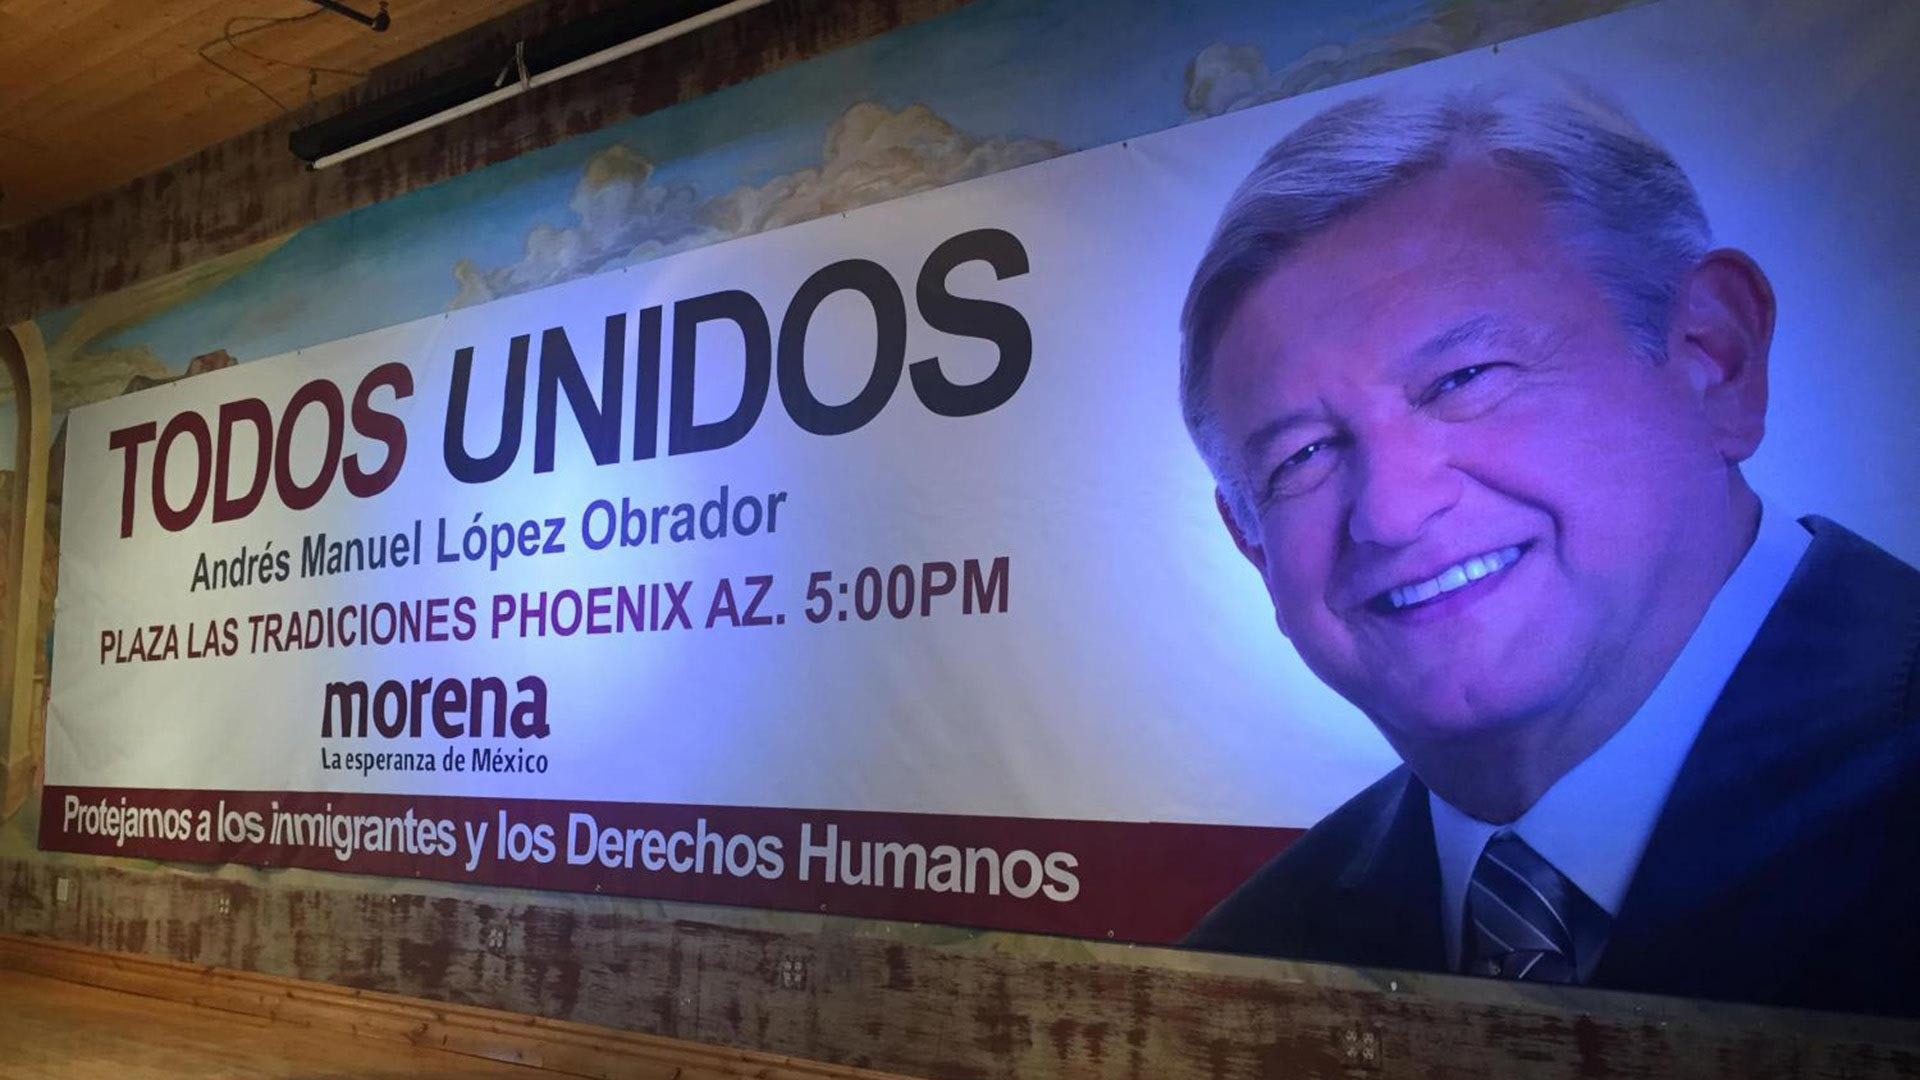 The leader of Morena, Andrés Manuel López Obrador, recently gave a speech about defending immigrants in Phoenix.